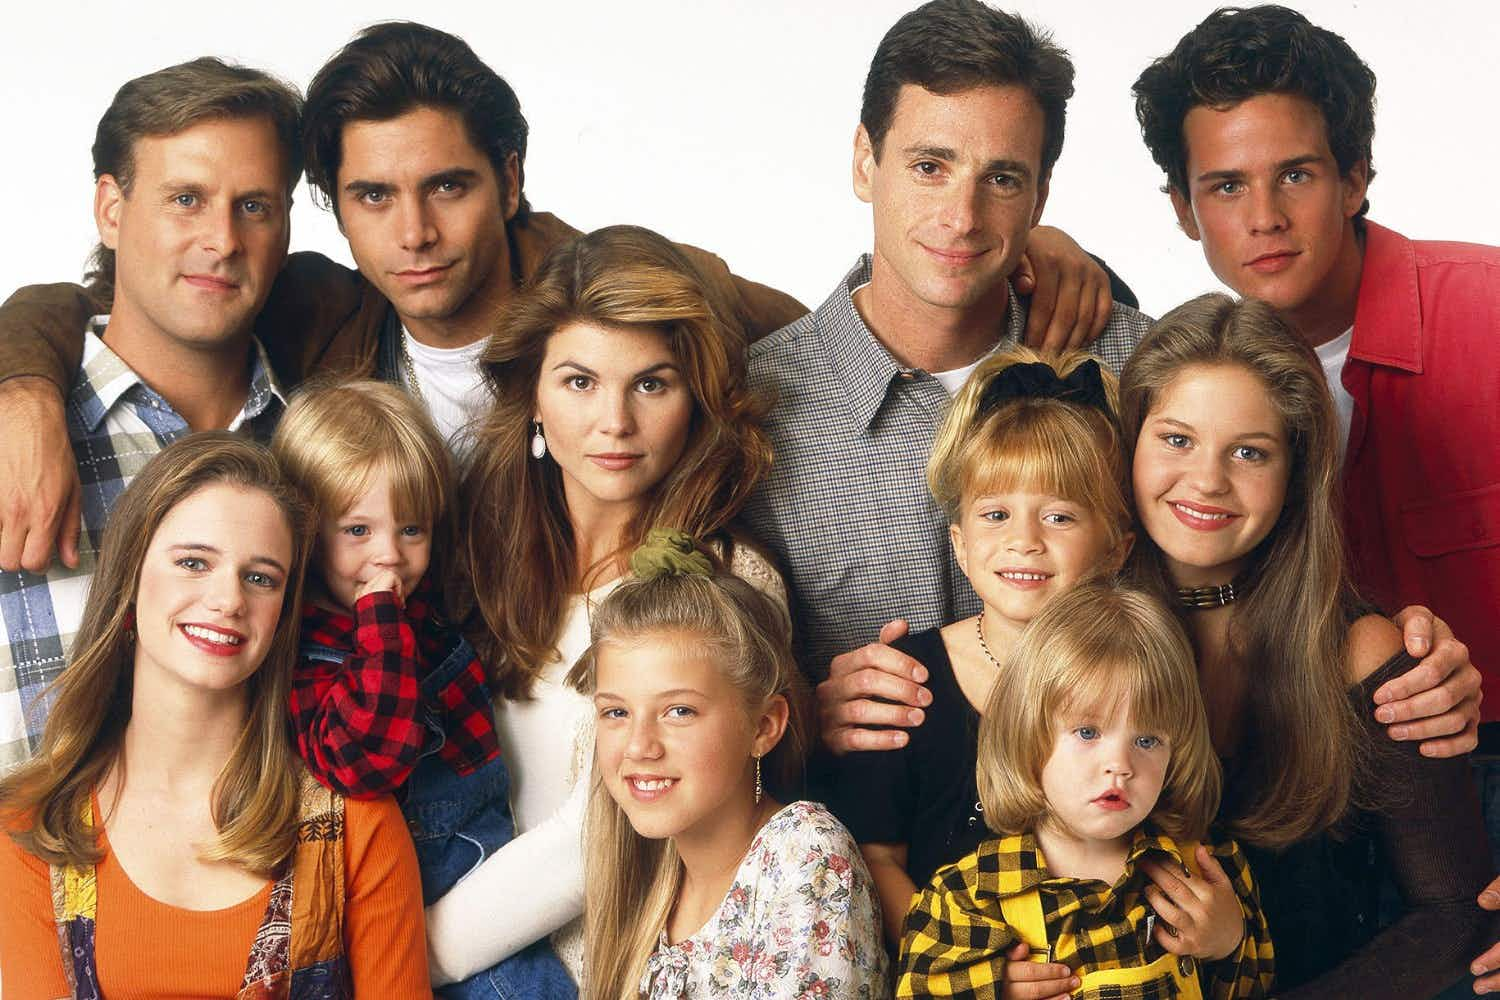 Tour buses have been banned from going to the 'Full House' home in San Francisco